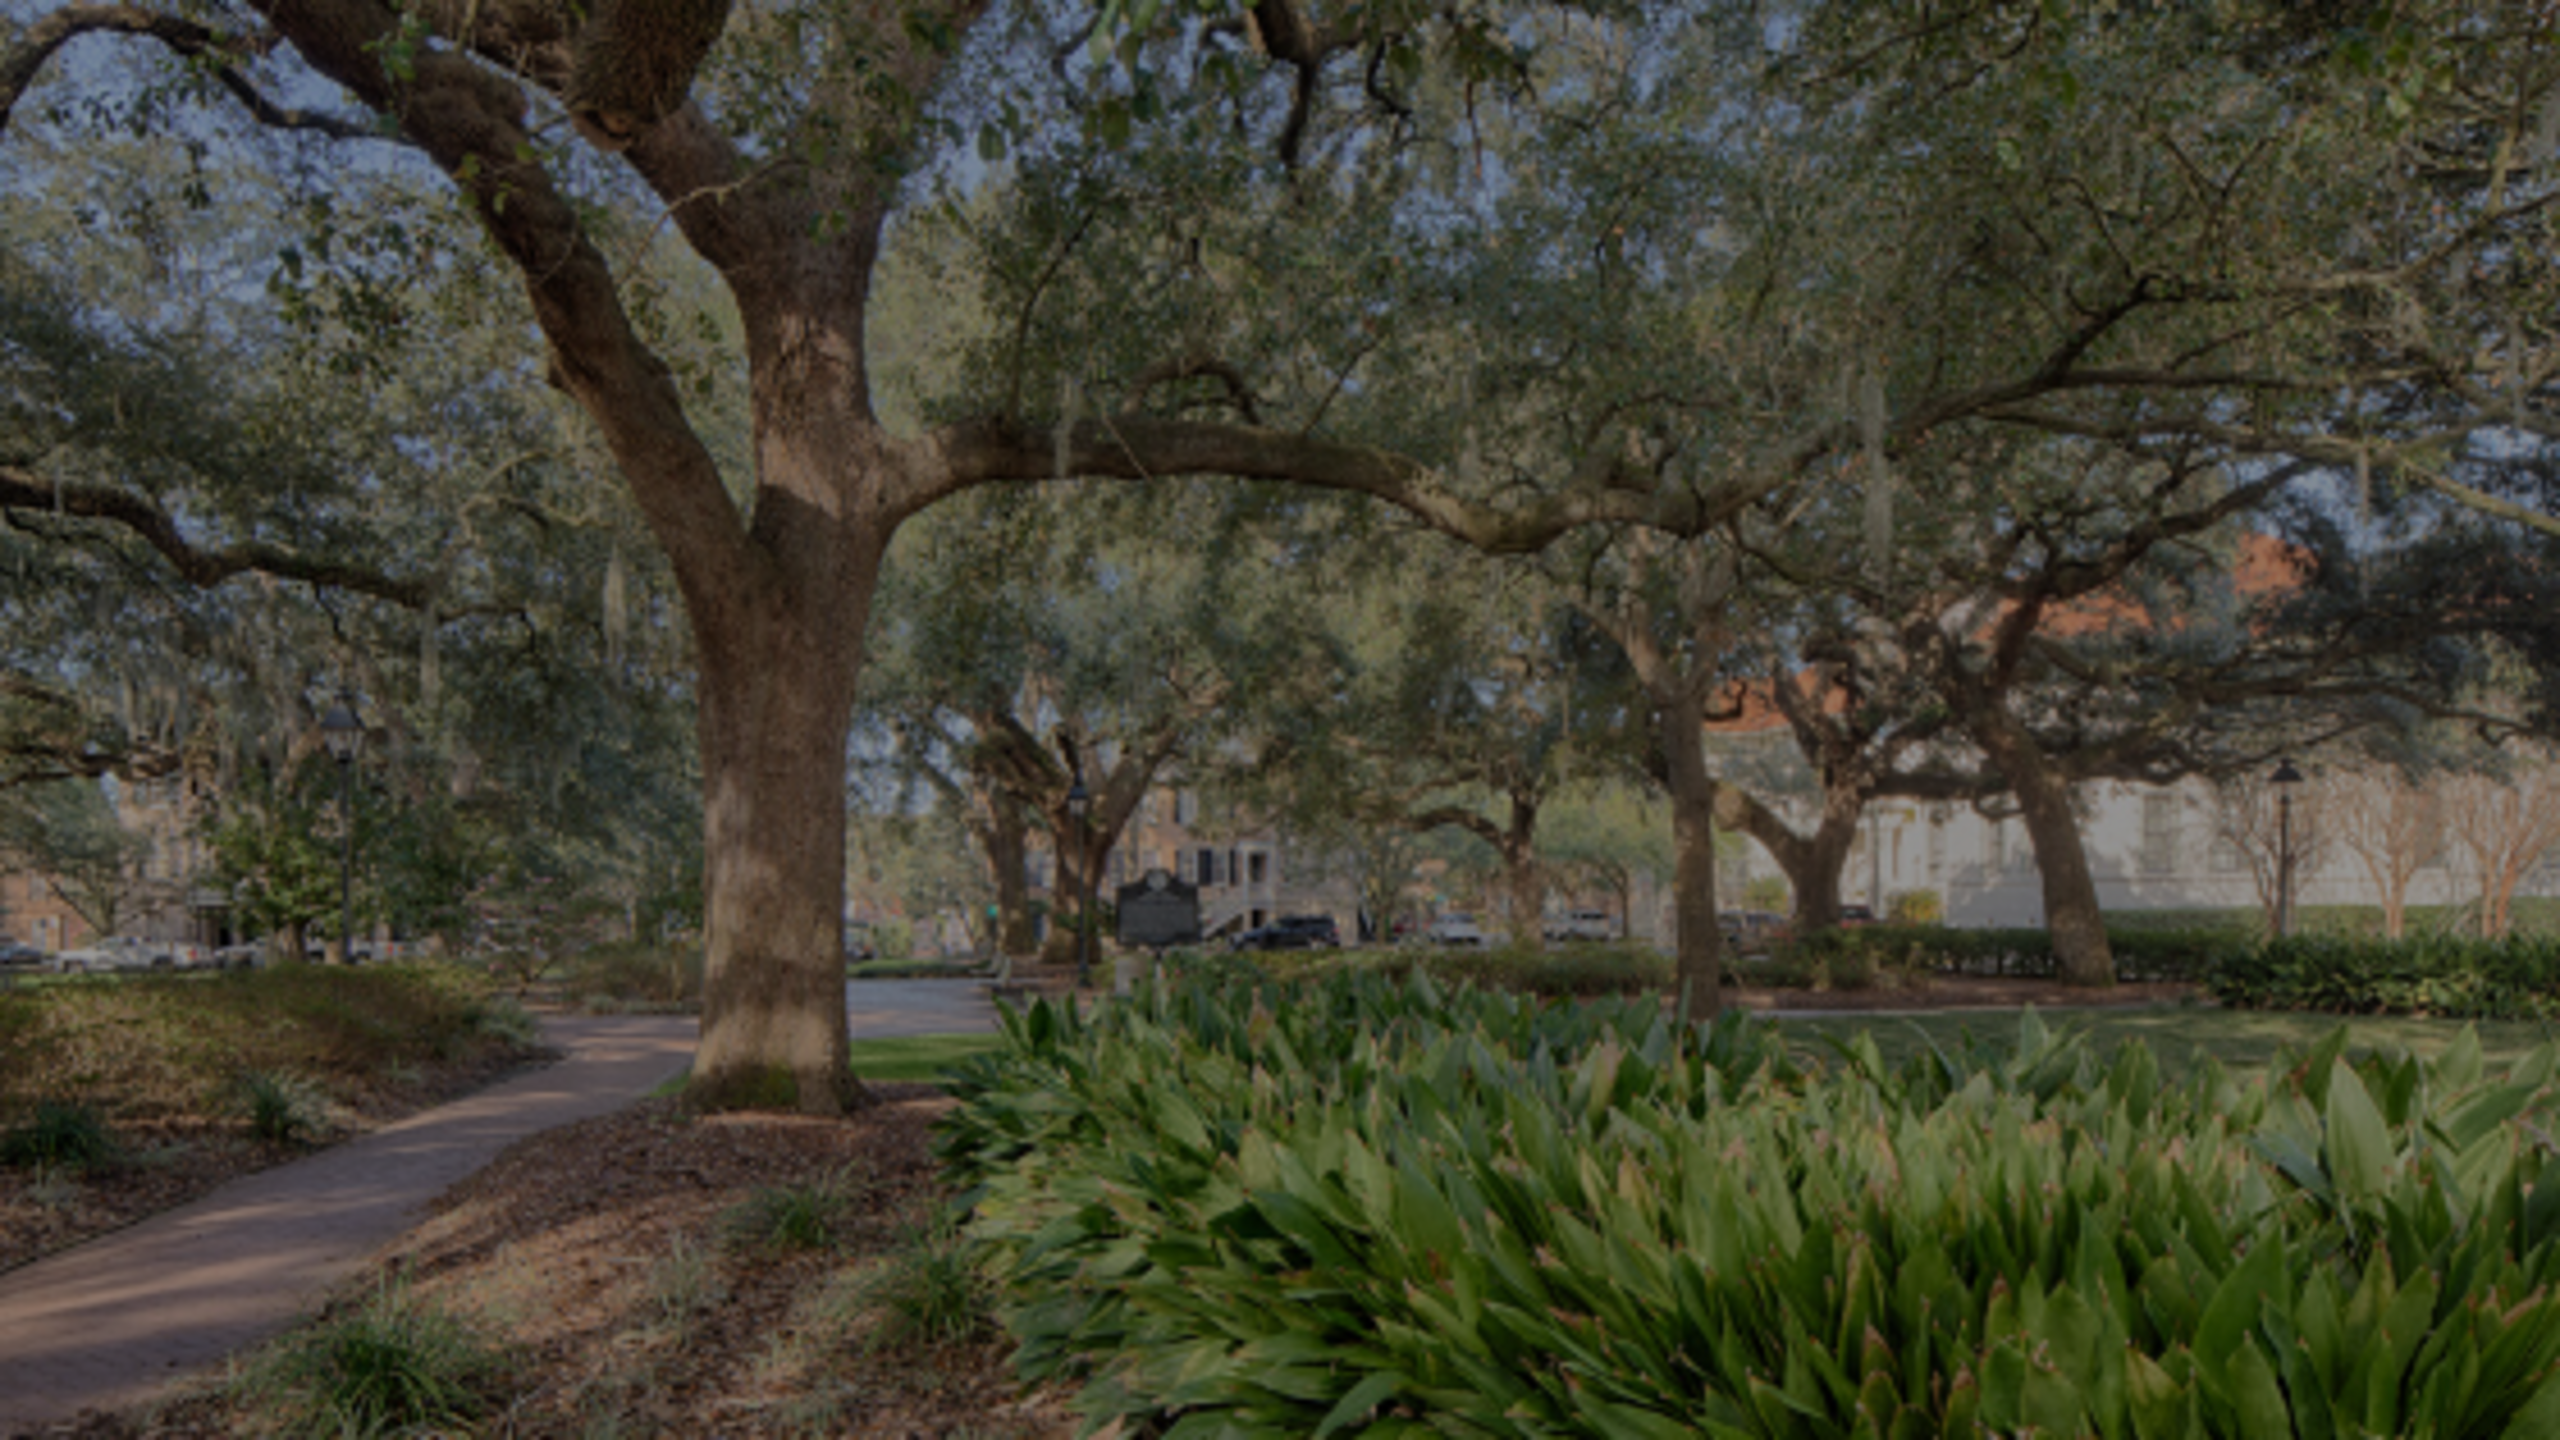 Savannah's Real Estate Industry Uses Technology, Social Distancing to Adjust to COVID-19 Changes